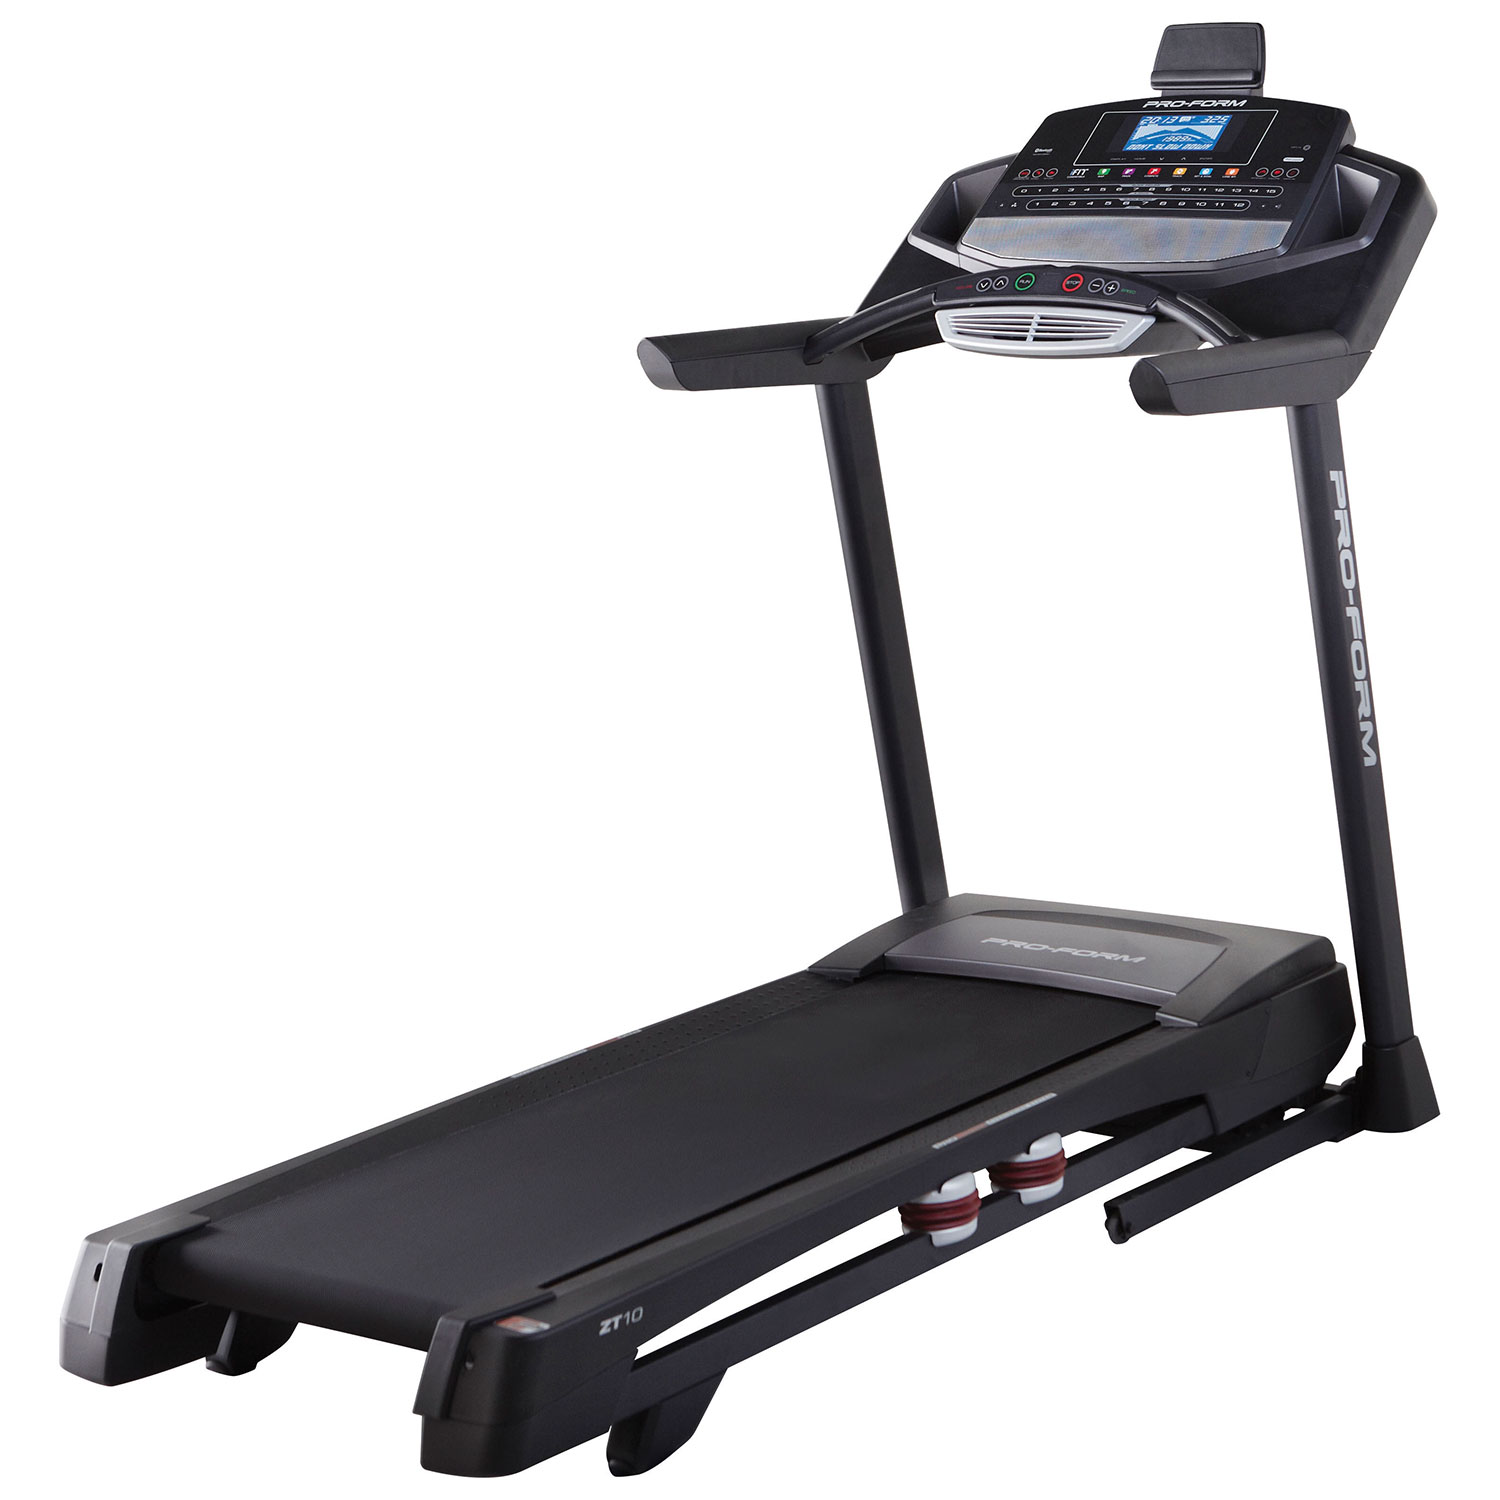 Goplus Treadmill Desk: How To Stay Fit On A Budget